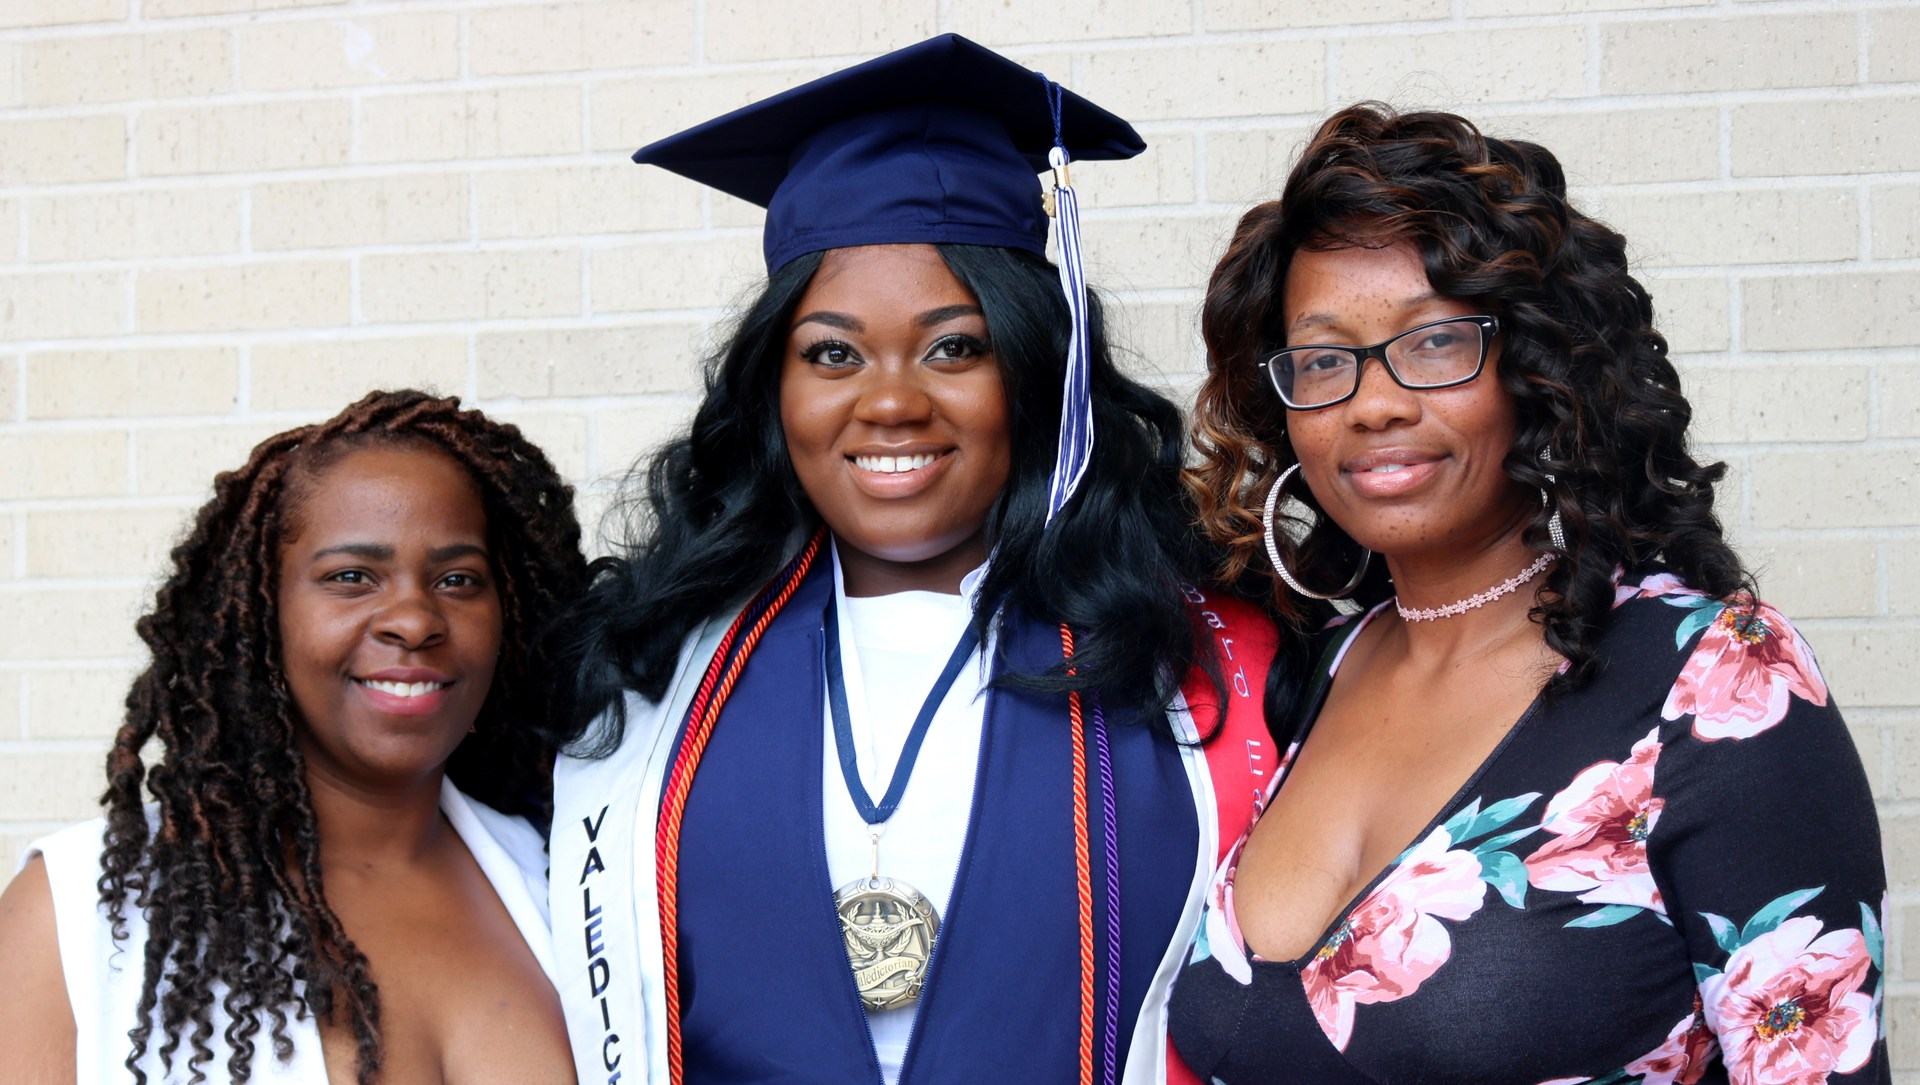 The KRHS 2018 Valedictorian and her family